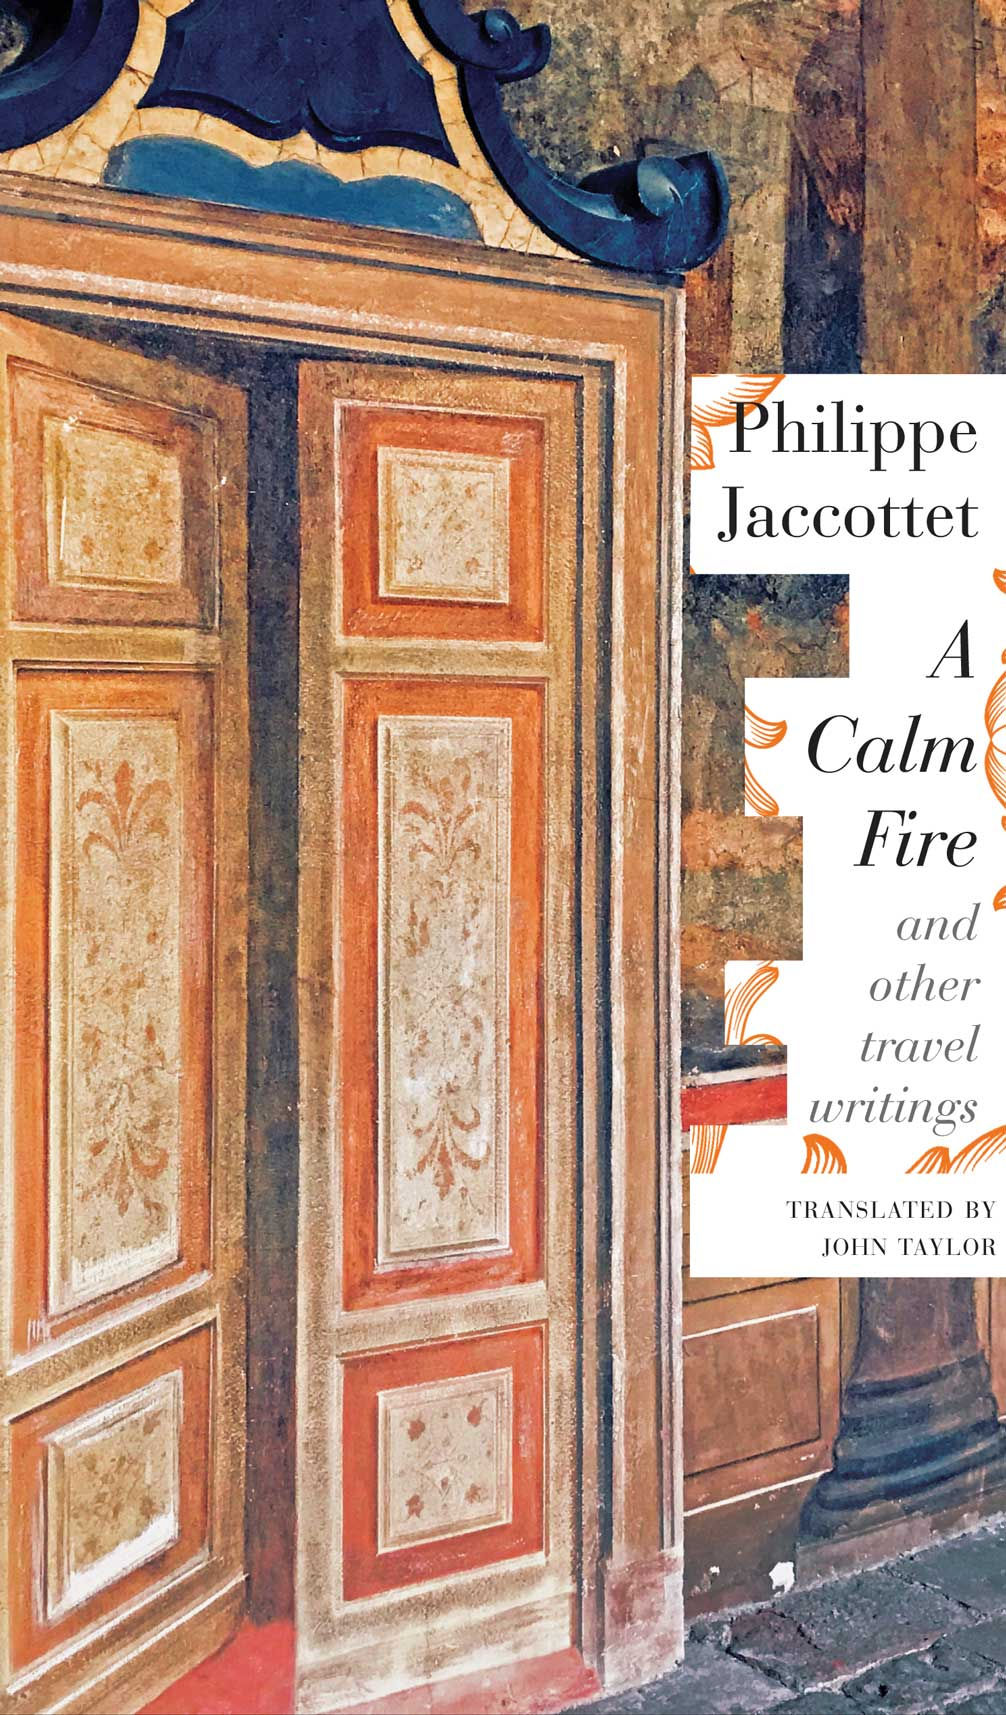 A Calm Fire - And Other Travel Writings by Philippe Jacottet |  Seagull Books